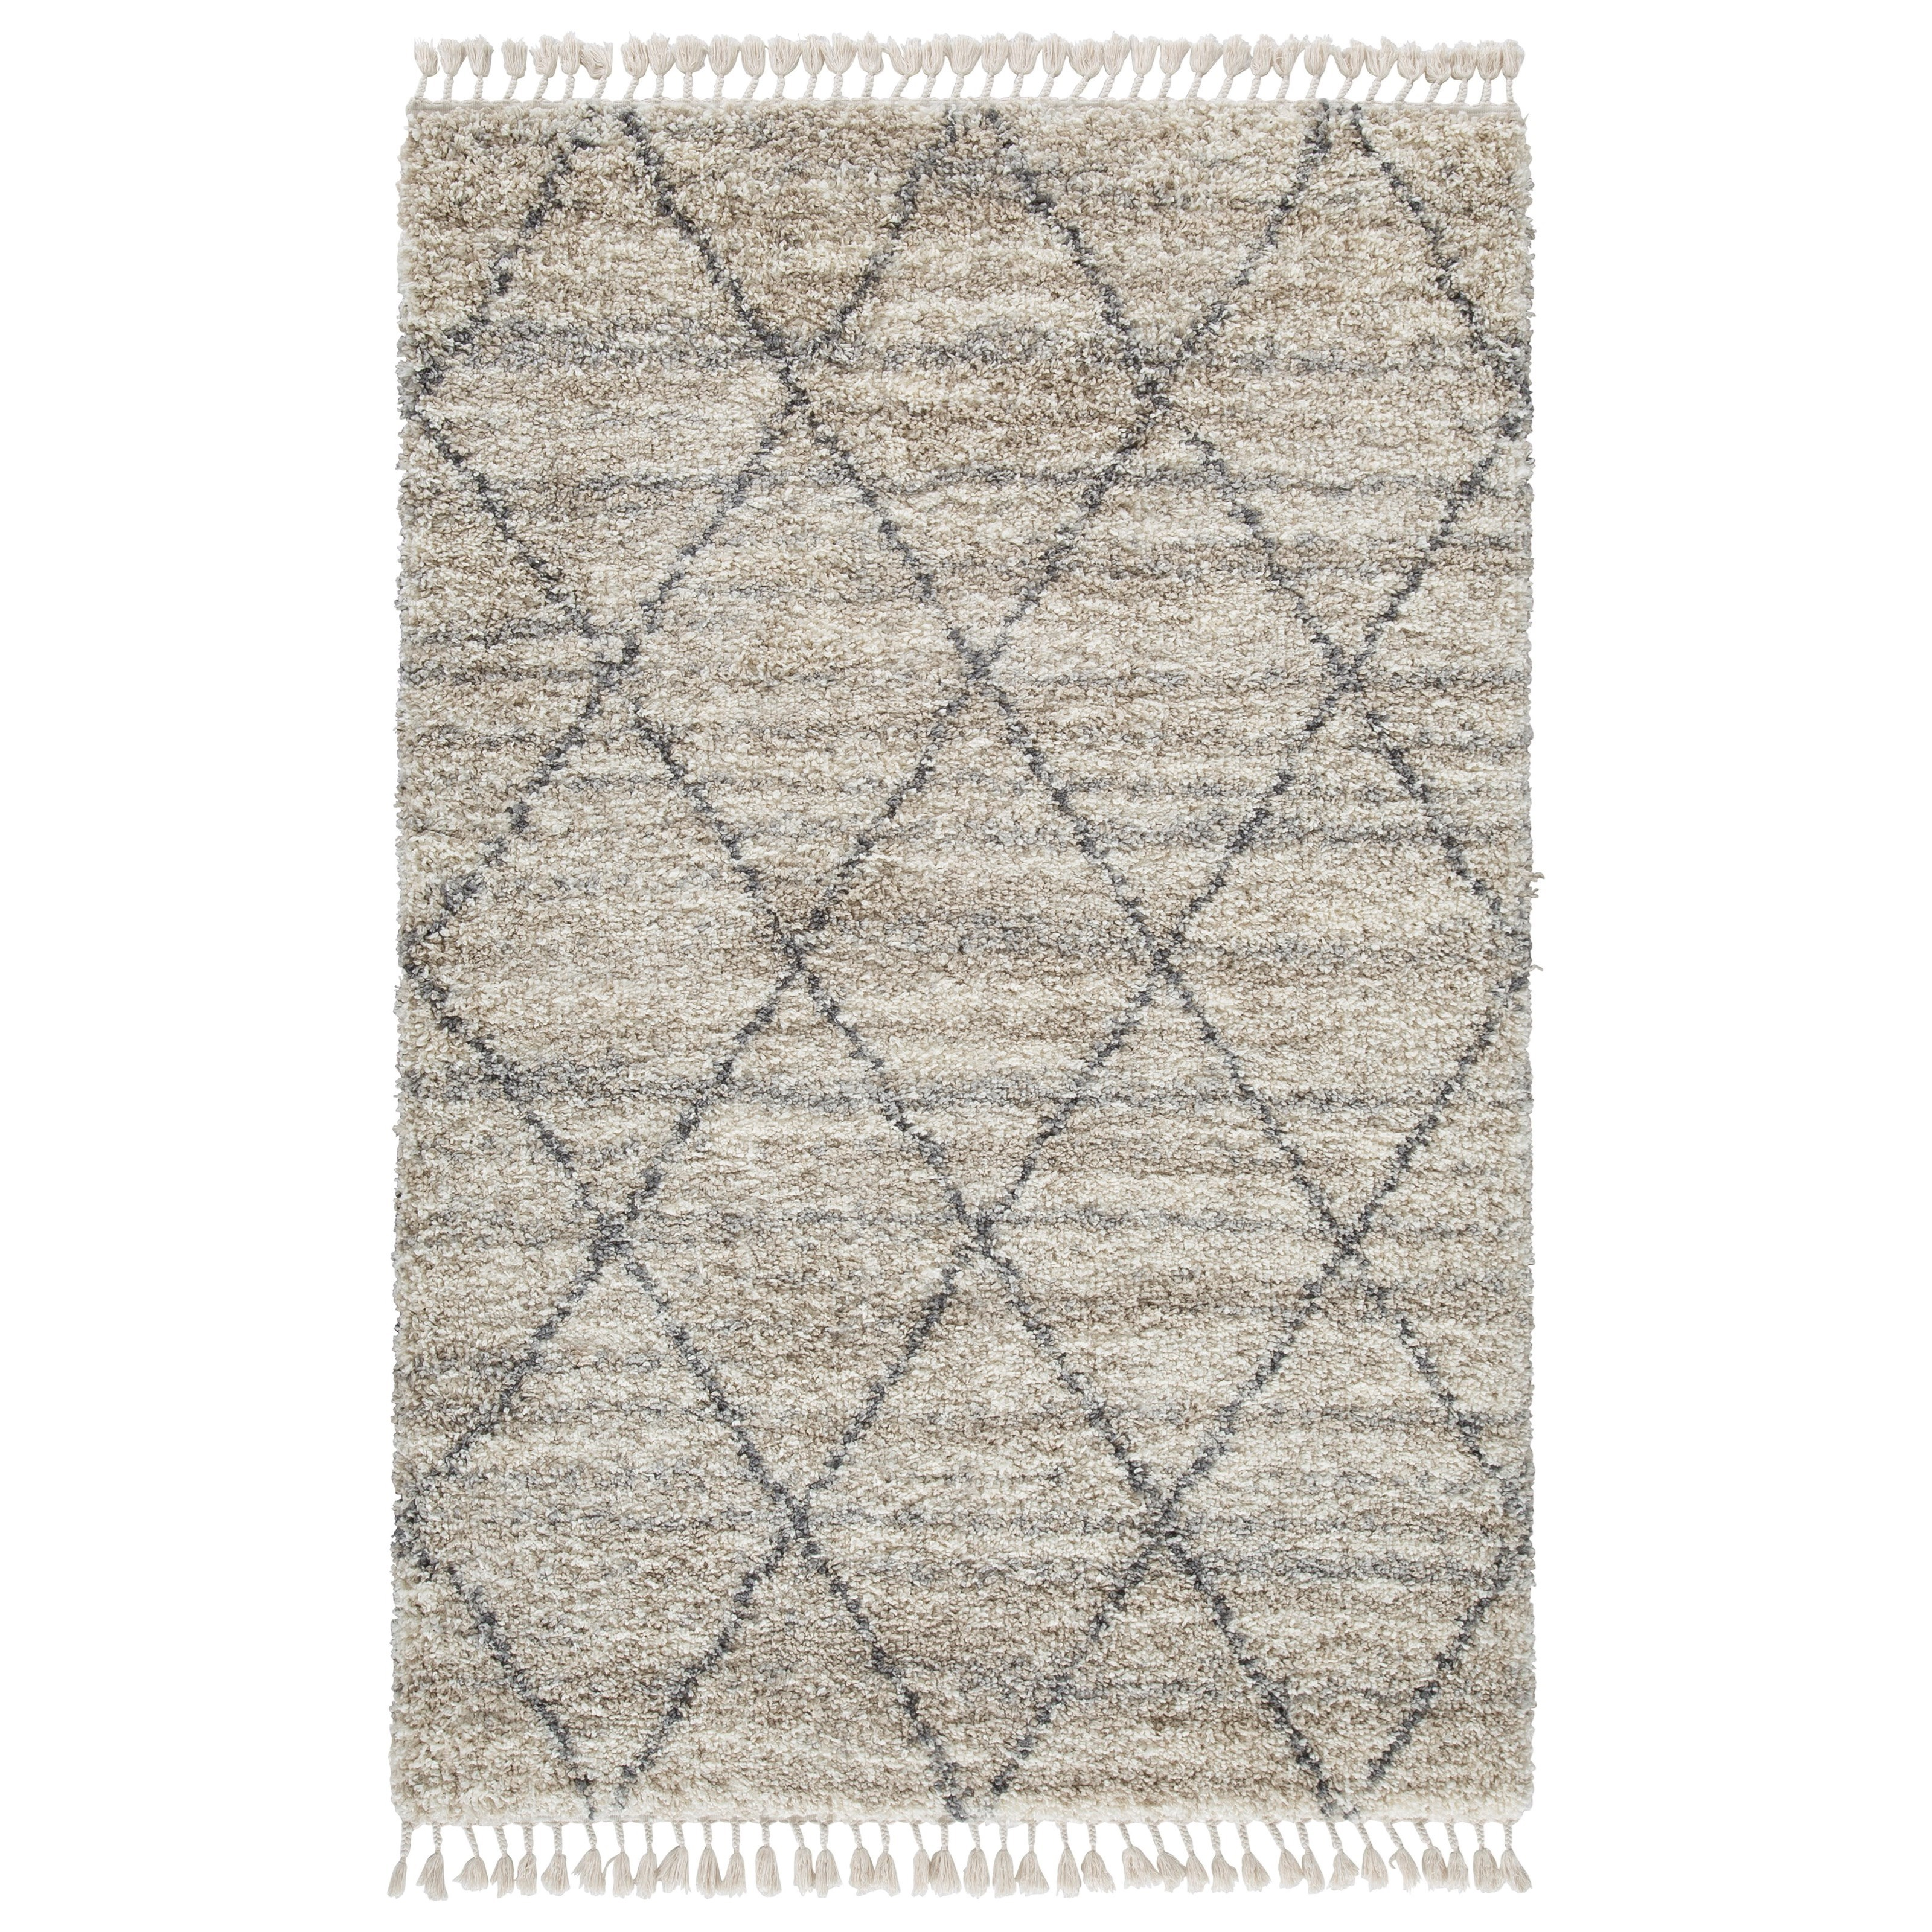 Casual Area Rugs Abdalah Gray/Cream Large Rug by StyleLine at EFO Furniture Outlet